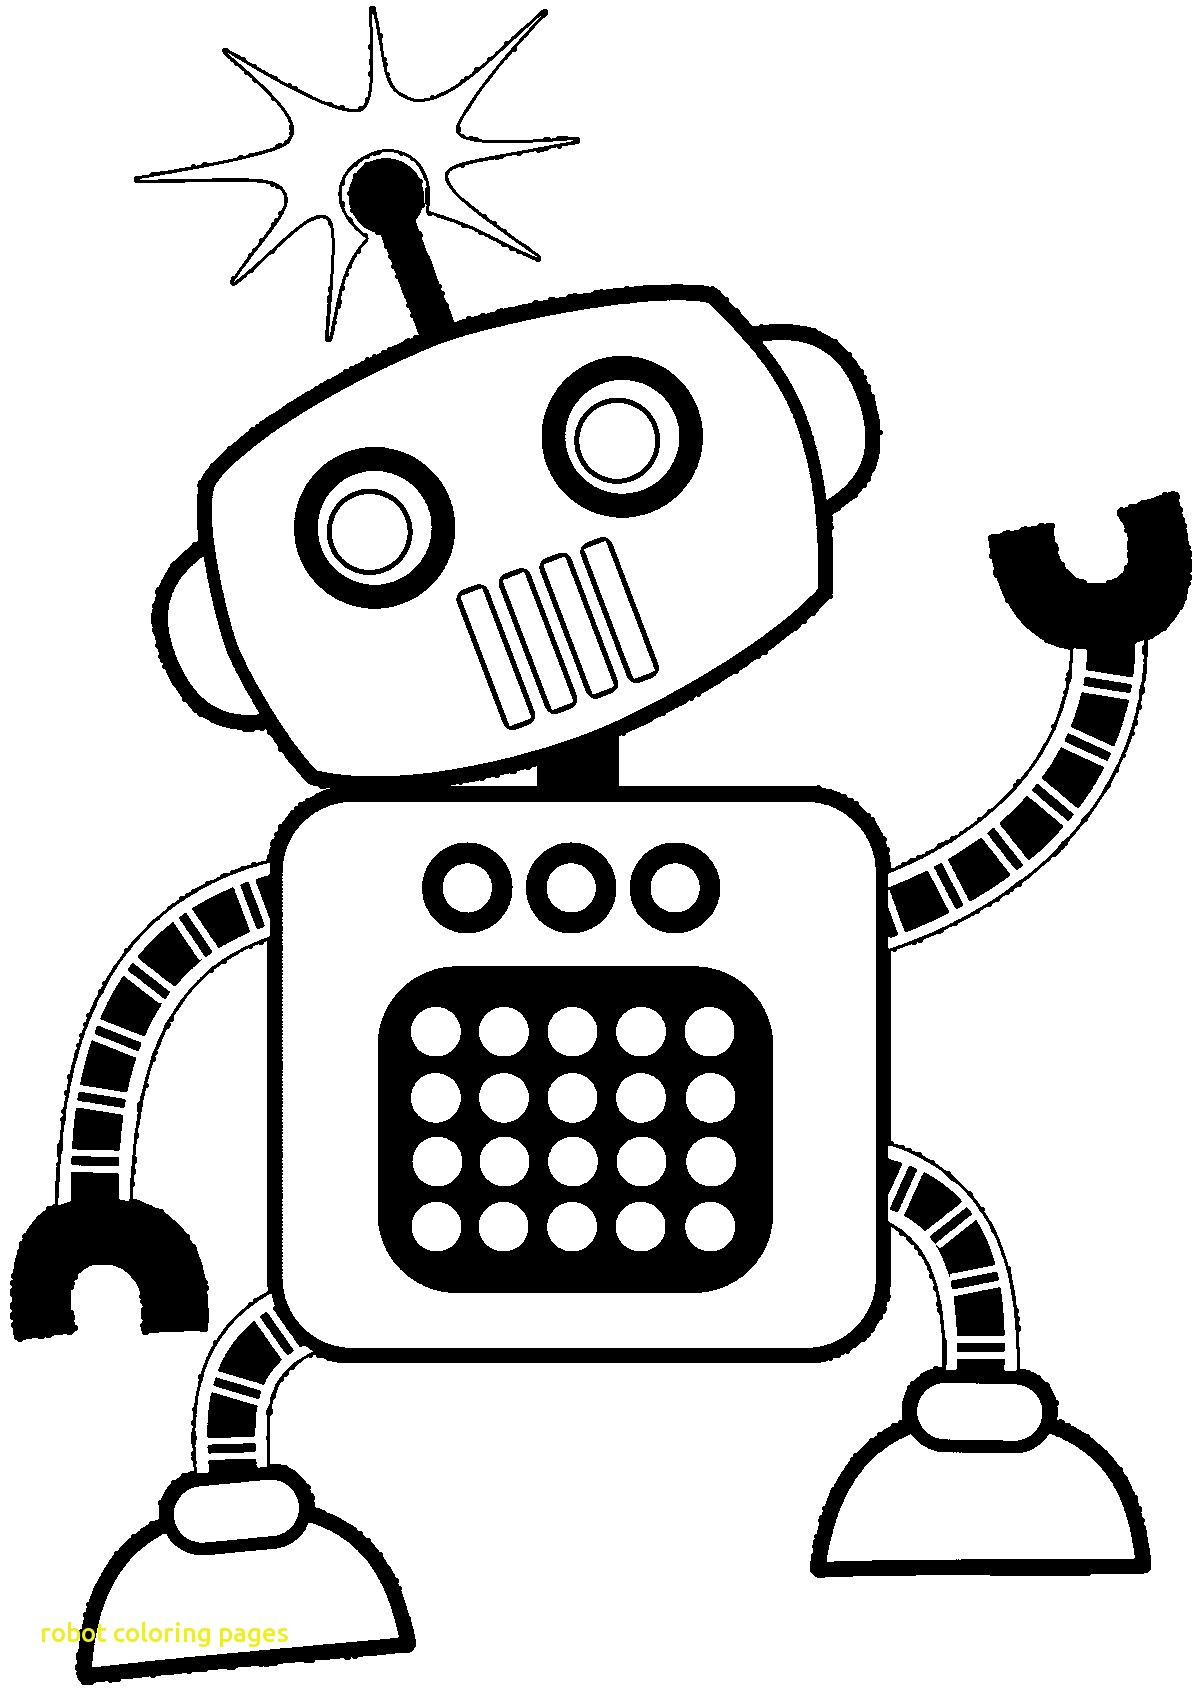 1203x1690 Best Robot Coloring Pages For Coloring For Kids With Robot